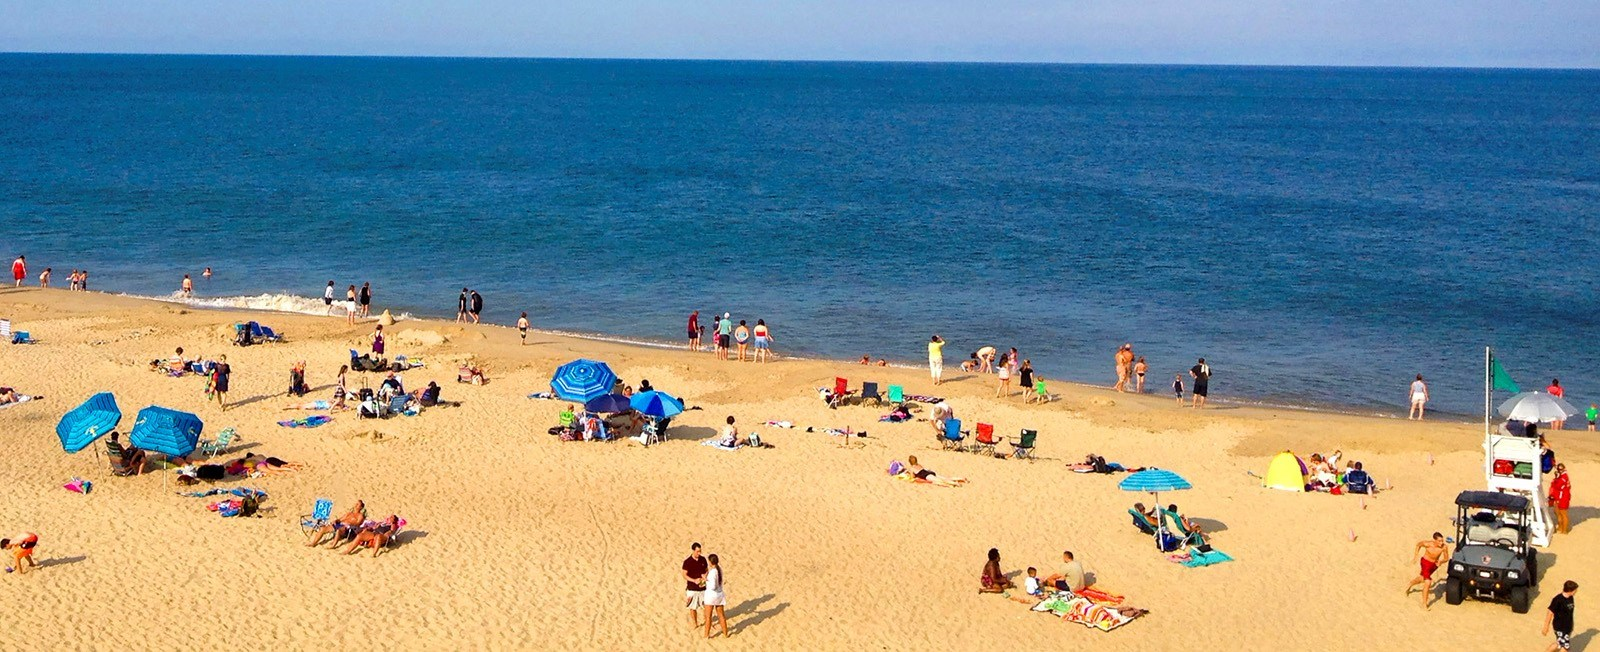 We did it again—a Cape Cod beach has made Dr. Beach's Top 10 Beaches of 2017! Coast Guard Beach, located in Eastham, came in sixth in the widely known and respected list.